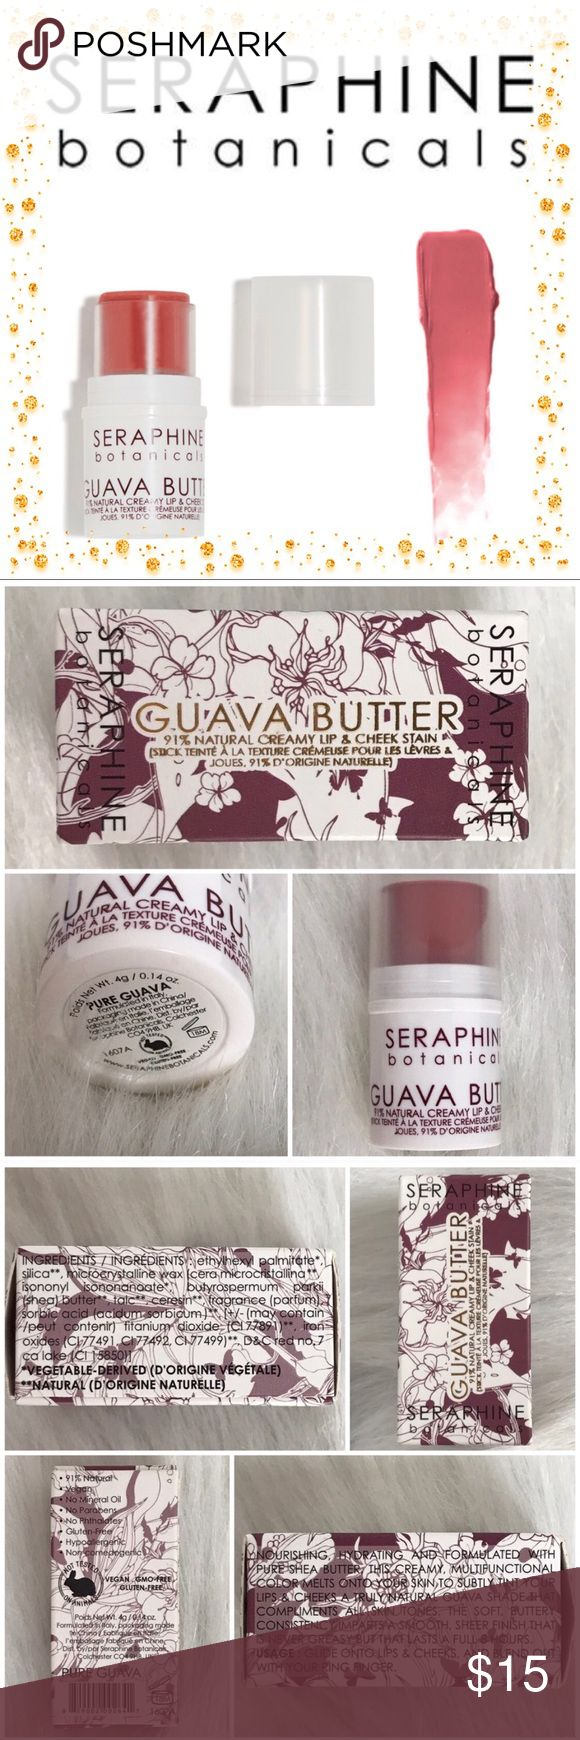 🆕NIB•Guava Butter Creamy Lip/Cheek Stain Nourishing, hydrating and formulated with Pure Shea Butter, this creamy, multifunctional color melts onto your skin to subtly tint your lips & cheeks a truly natural guava shade that compliments all skin tones. The soft, buttery consistency imparts a smooth, sheer finish that is never greasy but that lasts a full 8 hours.  Usage: Glide onto lips & cheeks, and blend out with your ring finger.  91% Natural  Vegan No Mineral Oil No Parabens No…